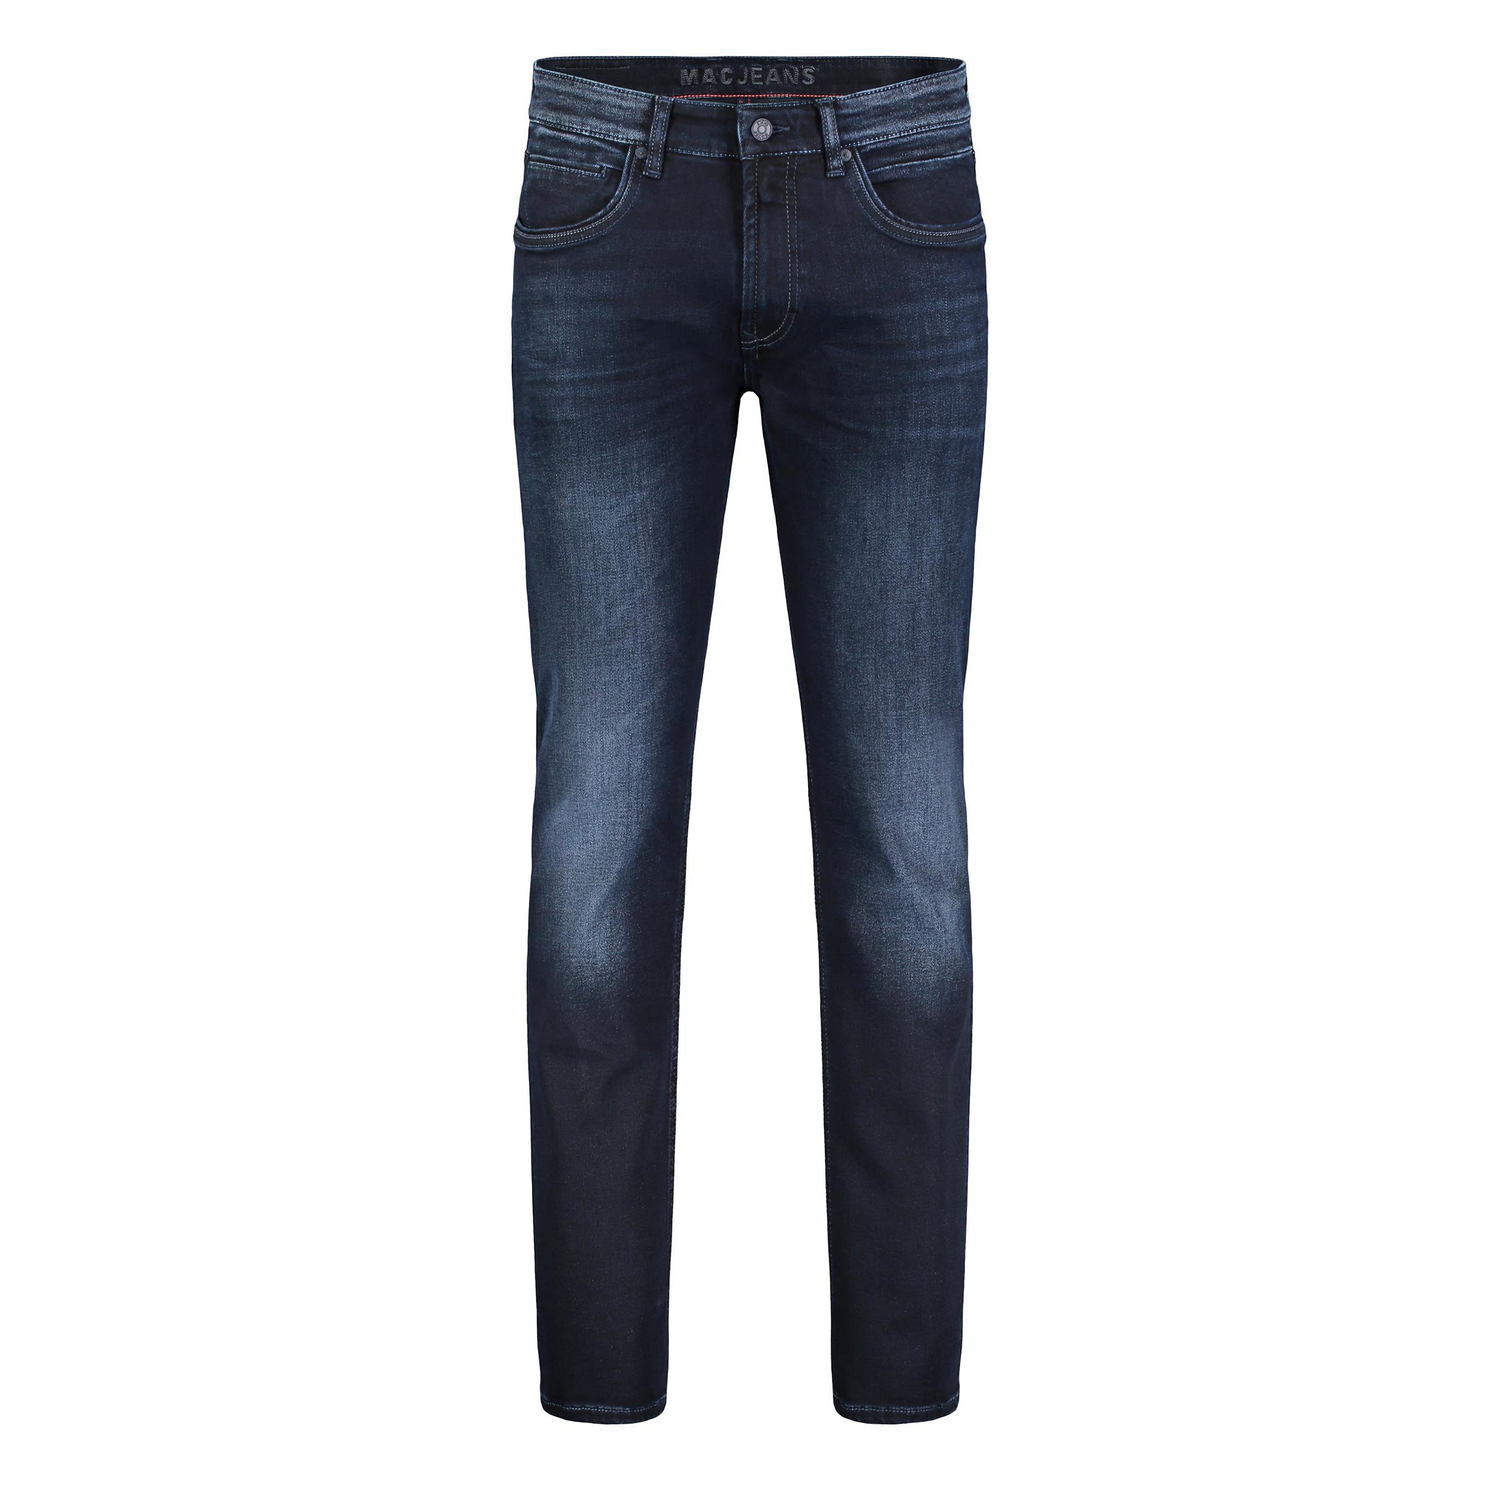 MAC Arne Pipe - Denim Flexx 1973L H793 Jeans stretch blue black